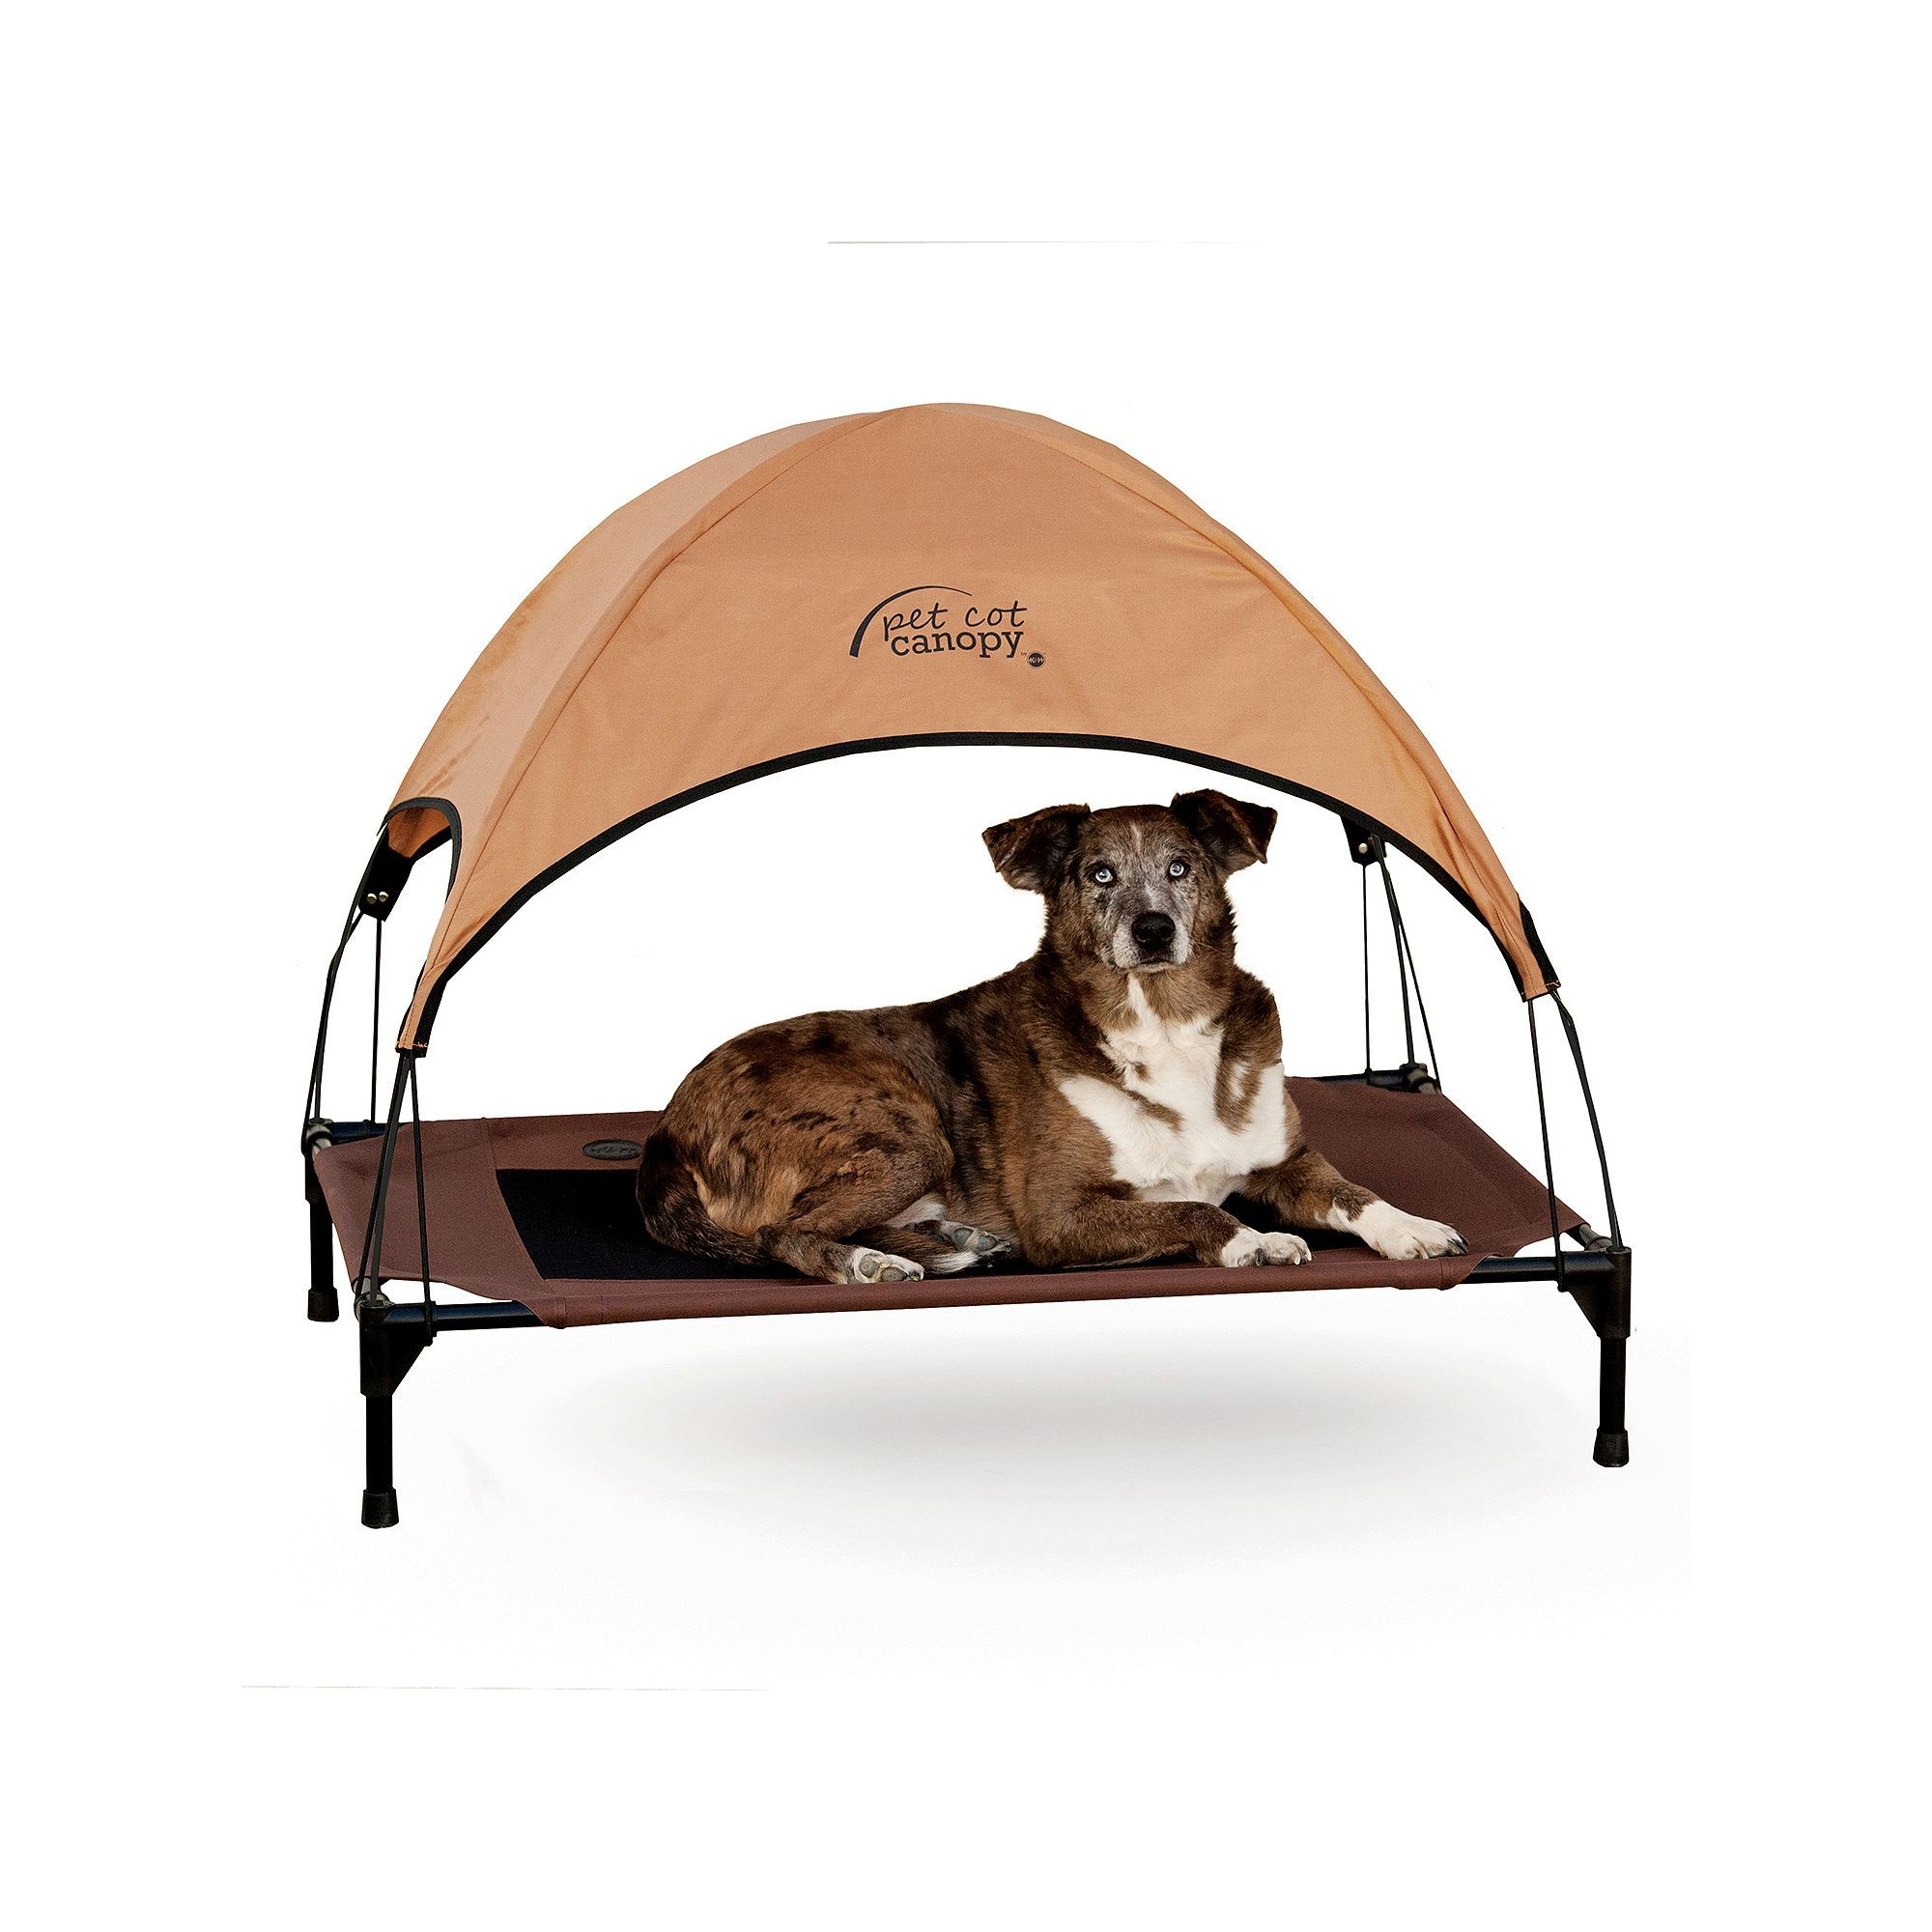 Ku0026H Large Tan Pet Cot Canopy Beig/Green (Beig/Khaki)  sc 1 st  Pinterest & Ku0026H Large Tan Pet Cot Canopy | Products | Pets Dogs Dog Bed